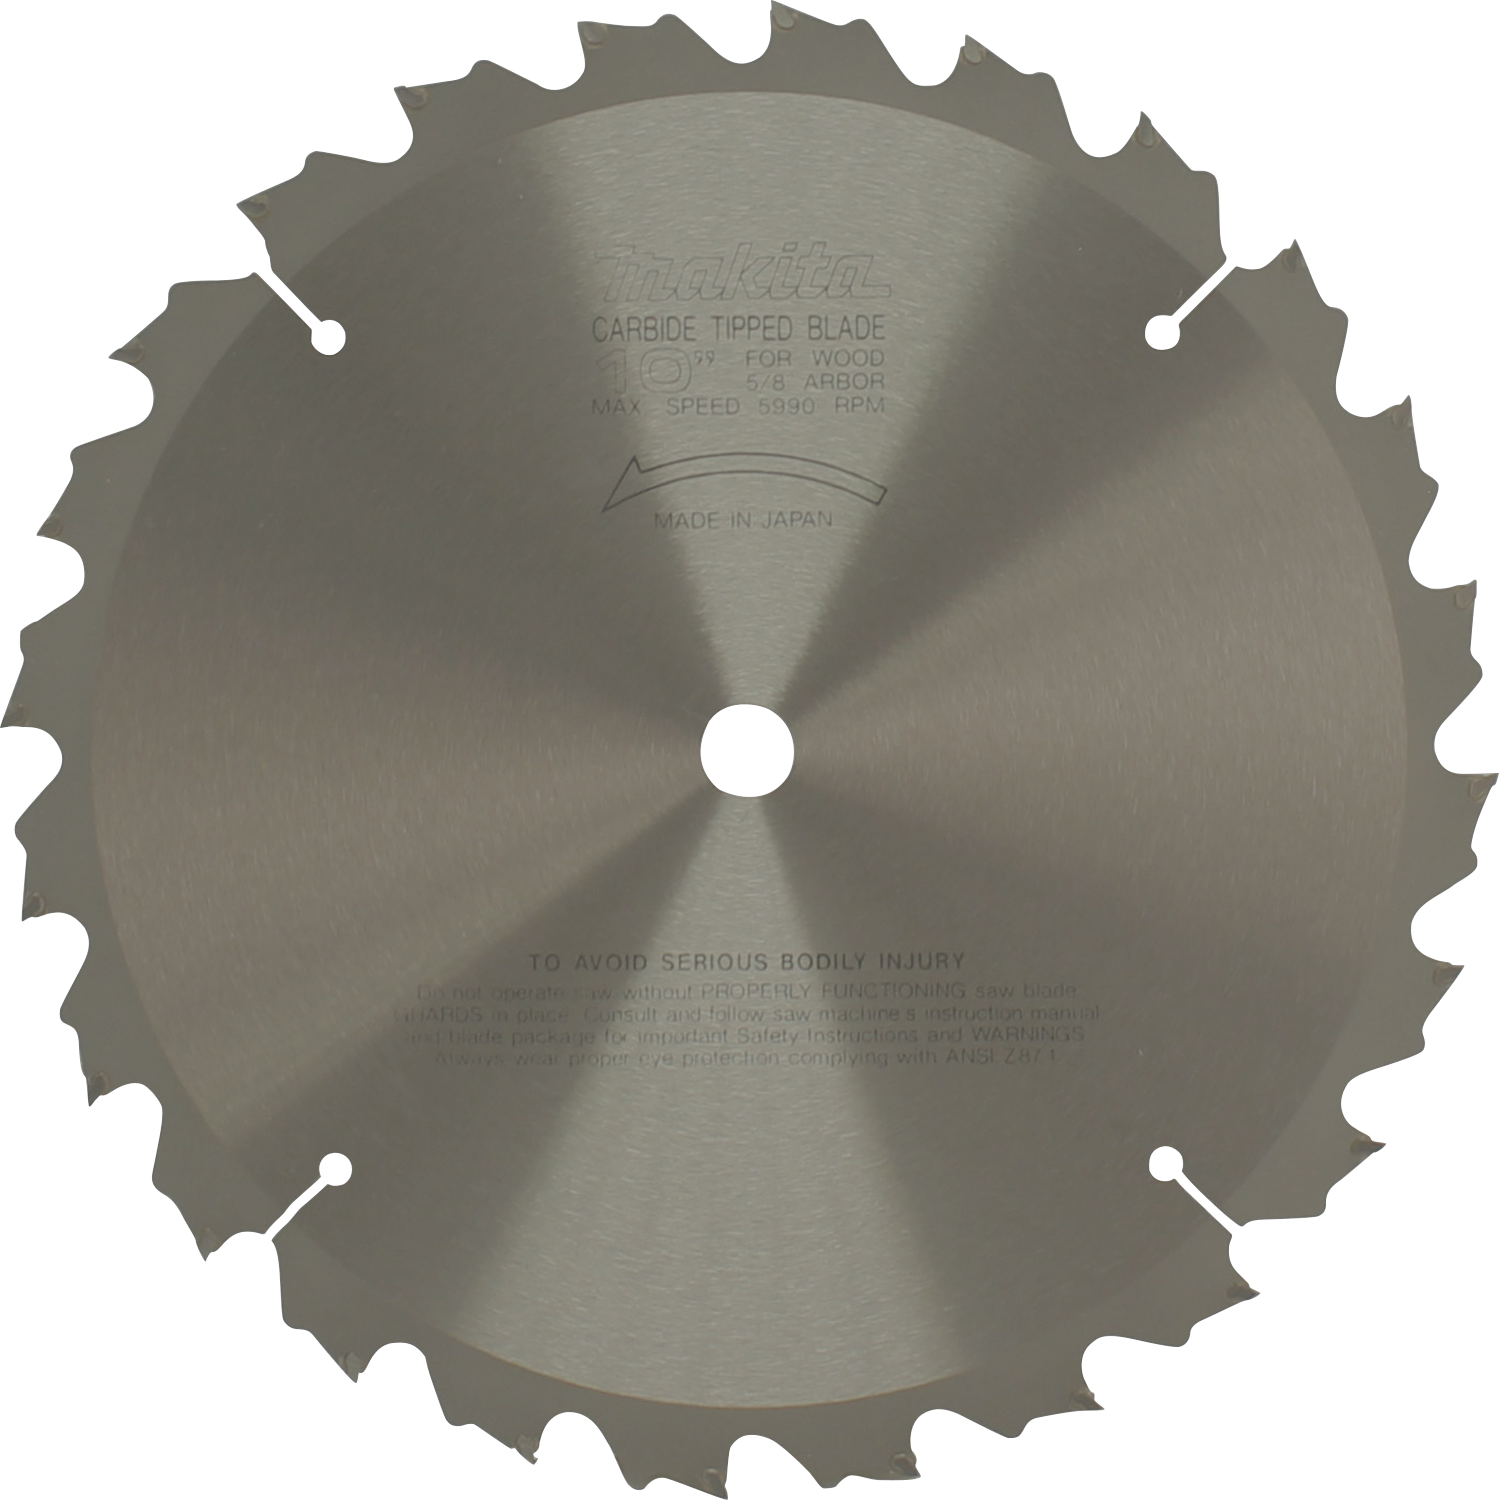 Makita usa product details 792736 2 table saw blade 792736 2 greentooth Images